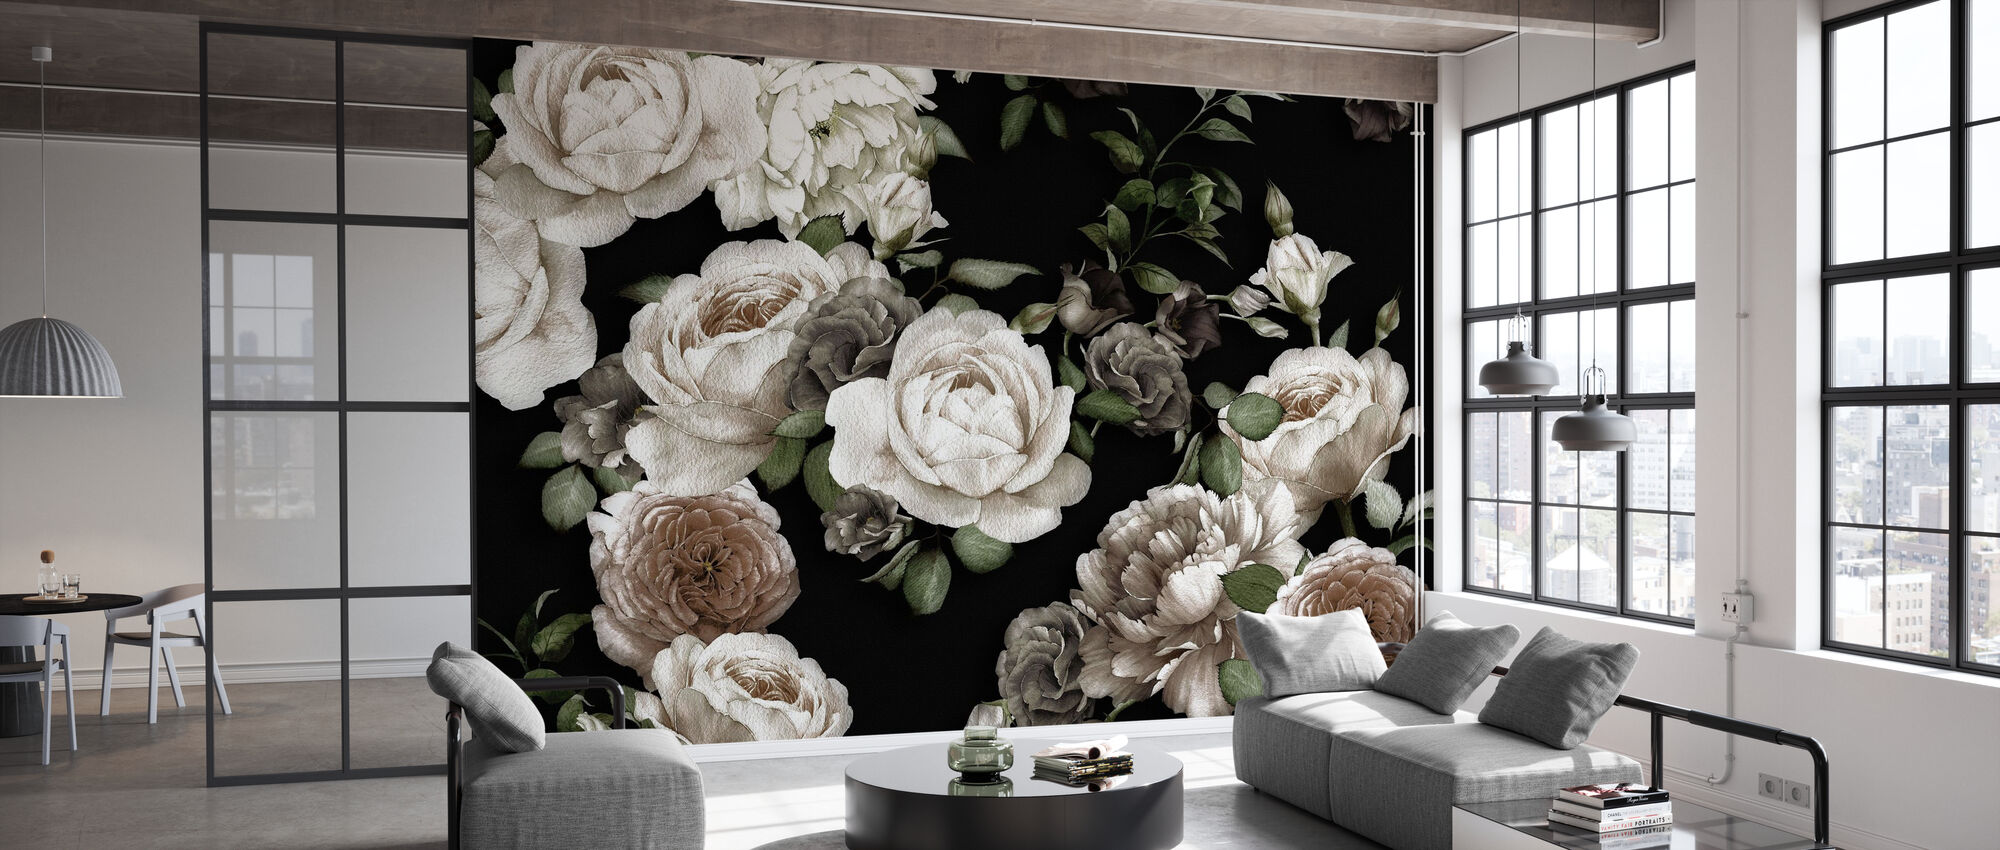 White Roses on Black Background - Wallpaper - Office